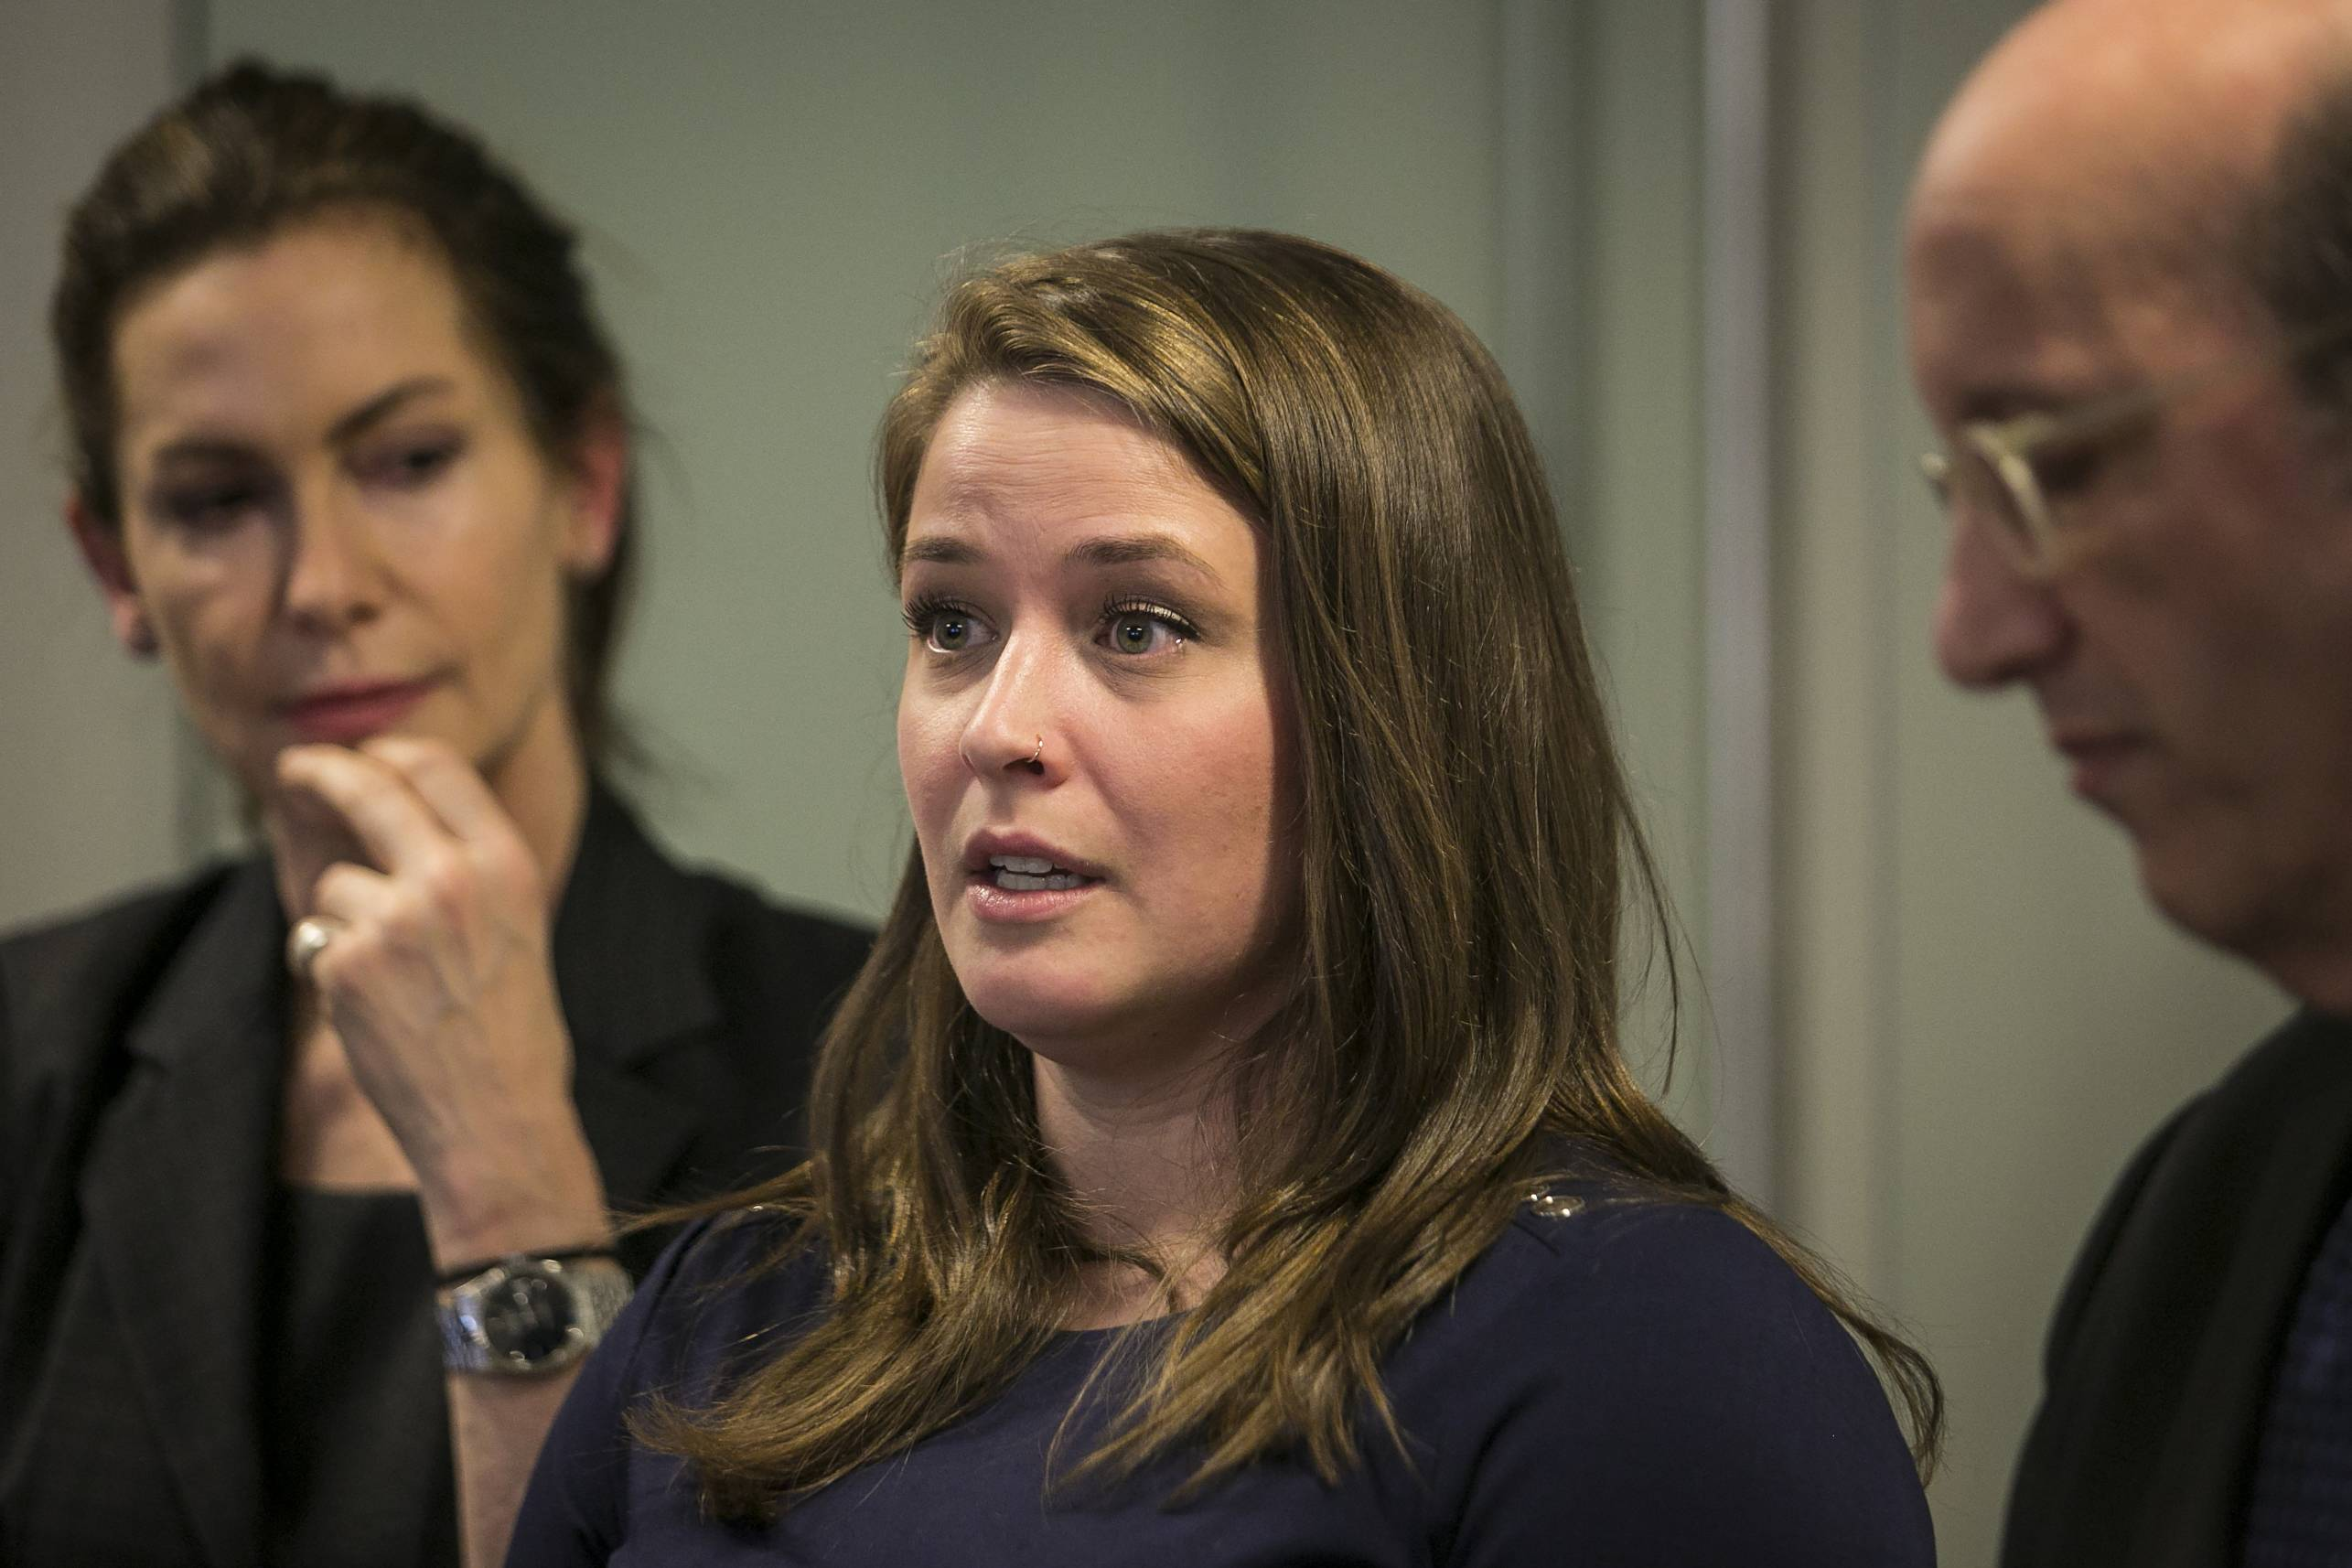 Alaina Hampton, a campaign worker for Illinois Democrats speaks Tuesday during a news conference in Chicago accompanied by advocates Lorna Brett, left and Shelly Kulwin. Hampton addressed reporters a day after House Speaker Michael Madigan dismissed political consultant Kevin Quinn after an investigation found Quinn sent her inappropriate text messages. In November, she wrote Madigan who had an attorney investigate.